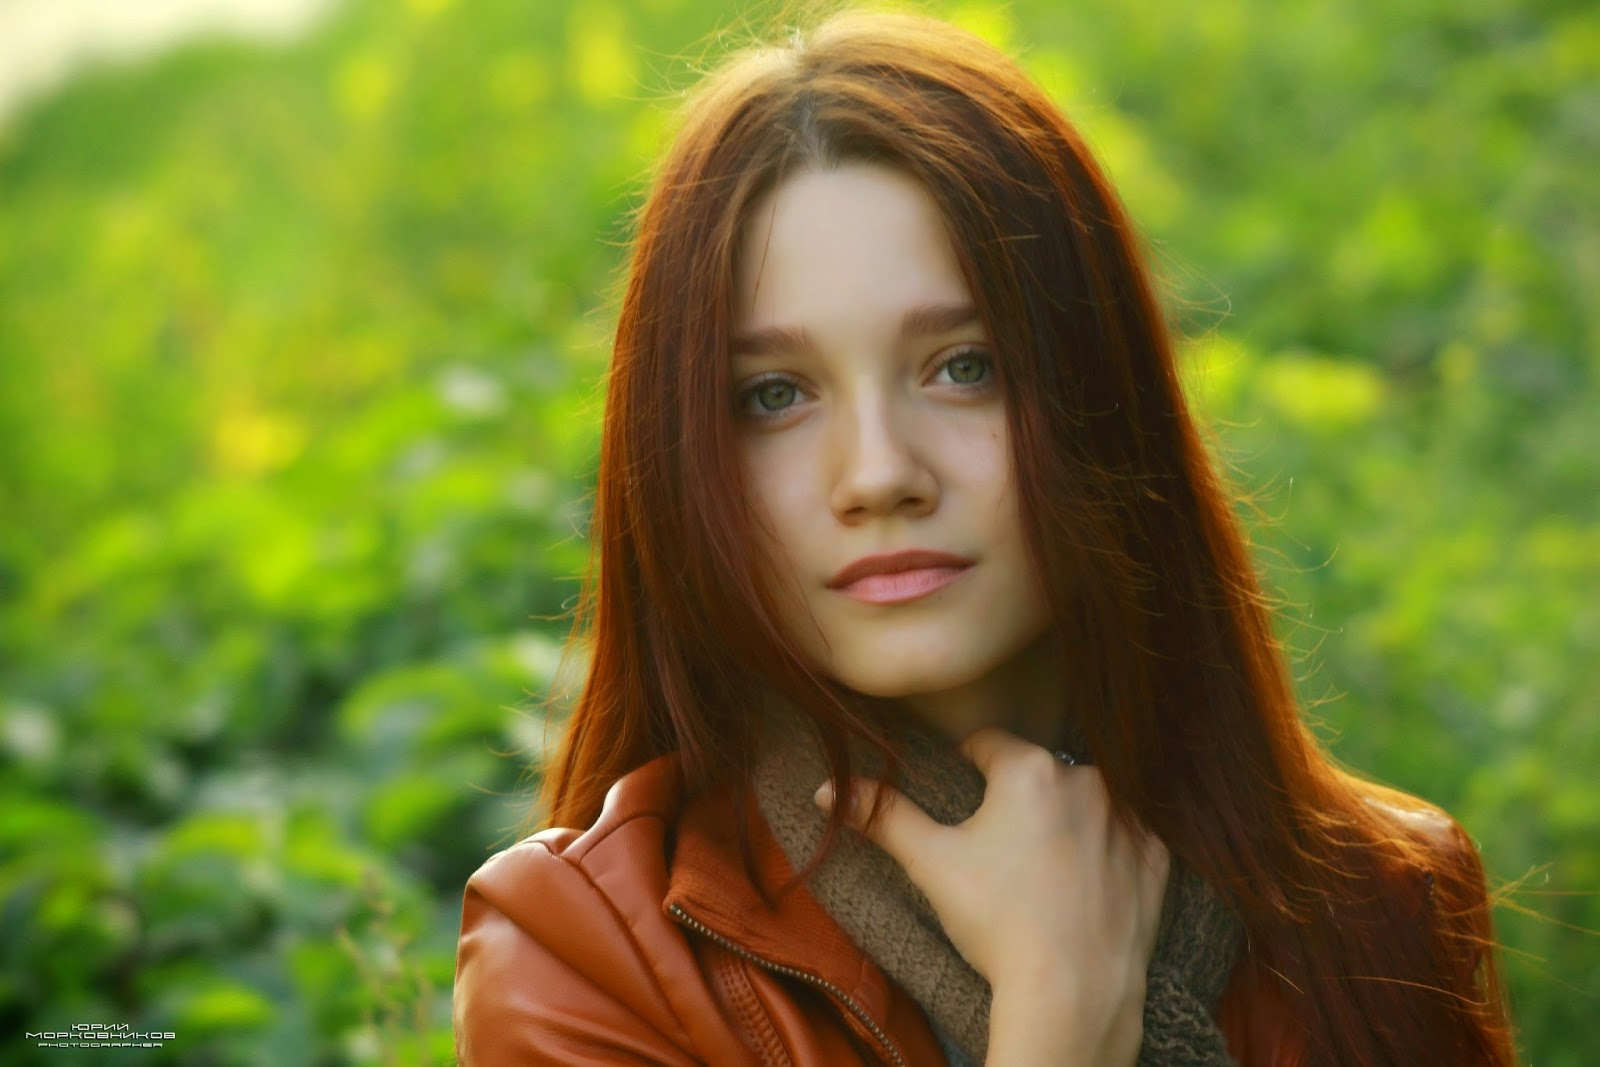 Ukraine Teen Girls